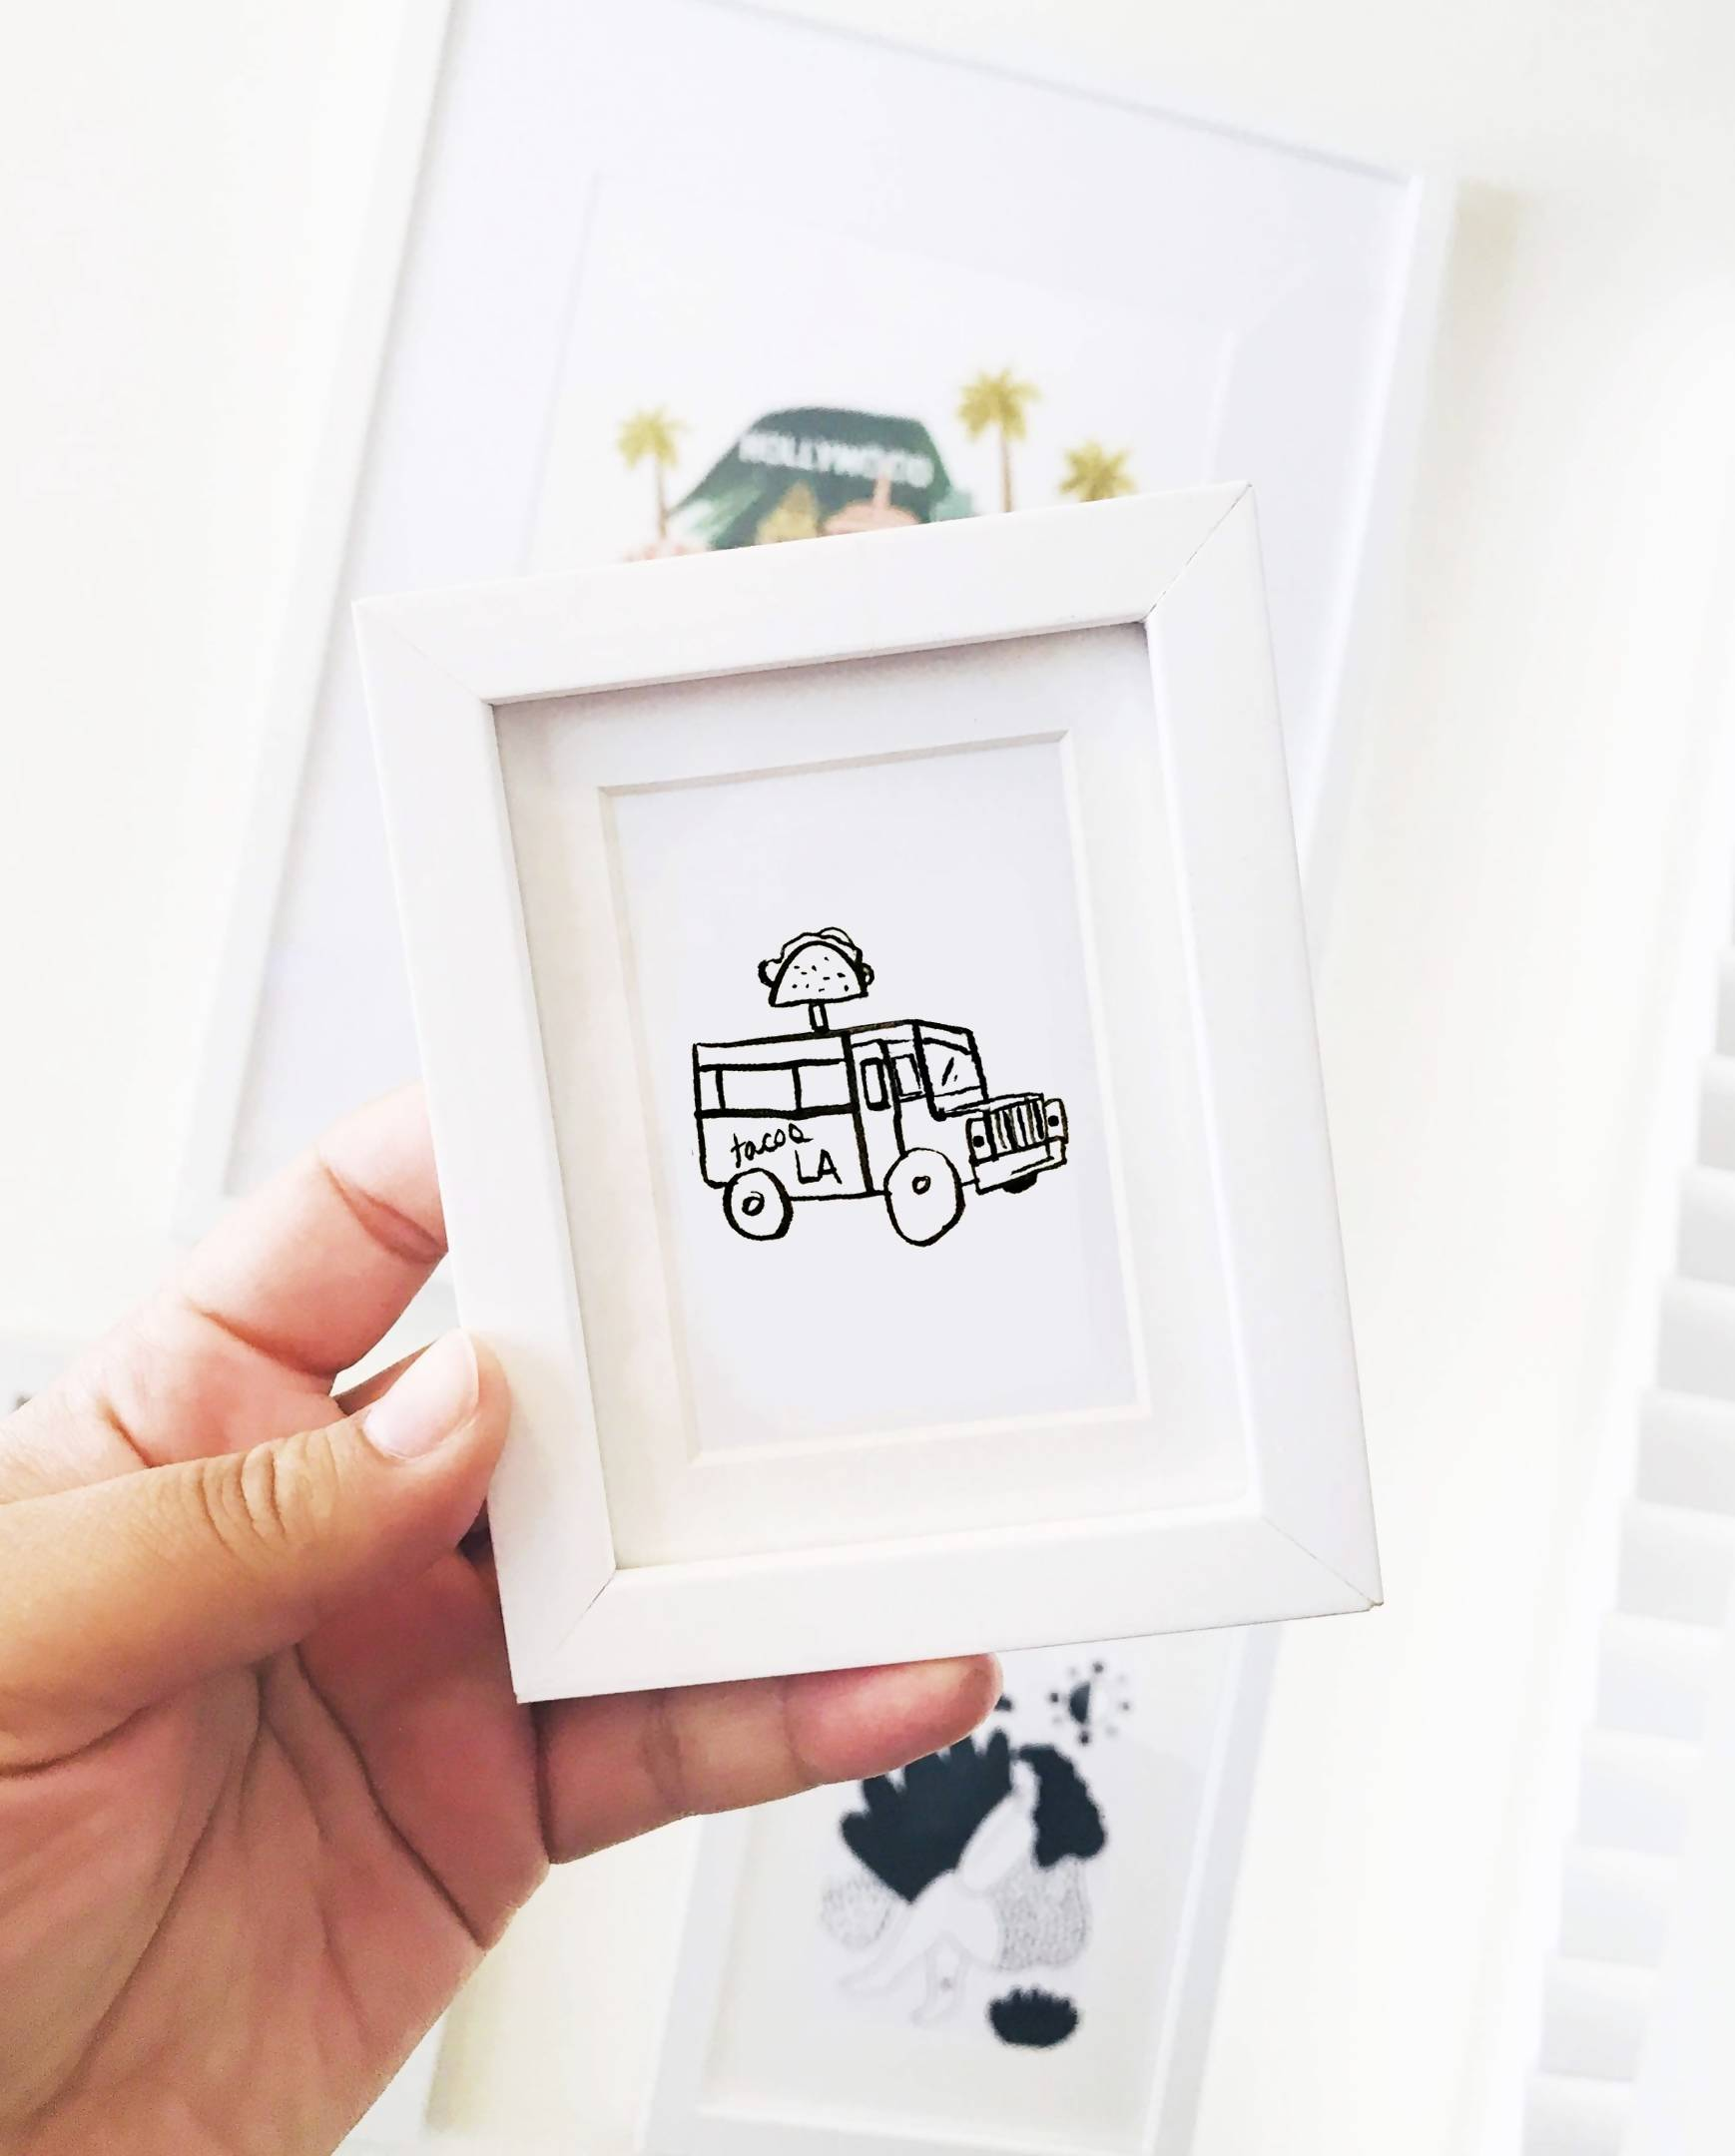 2 X 3 MINI ART PRINT FRAMED -ICE CREAM TRUCK